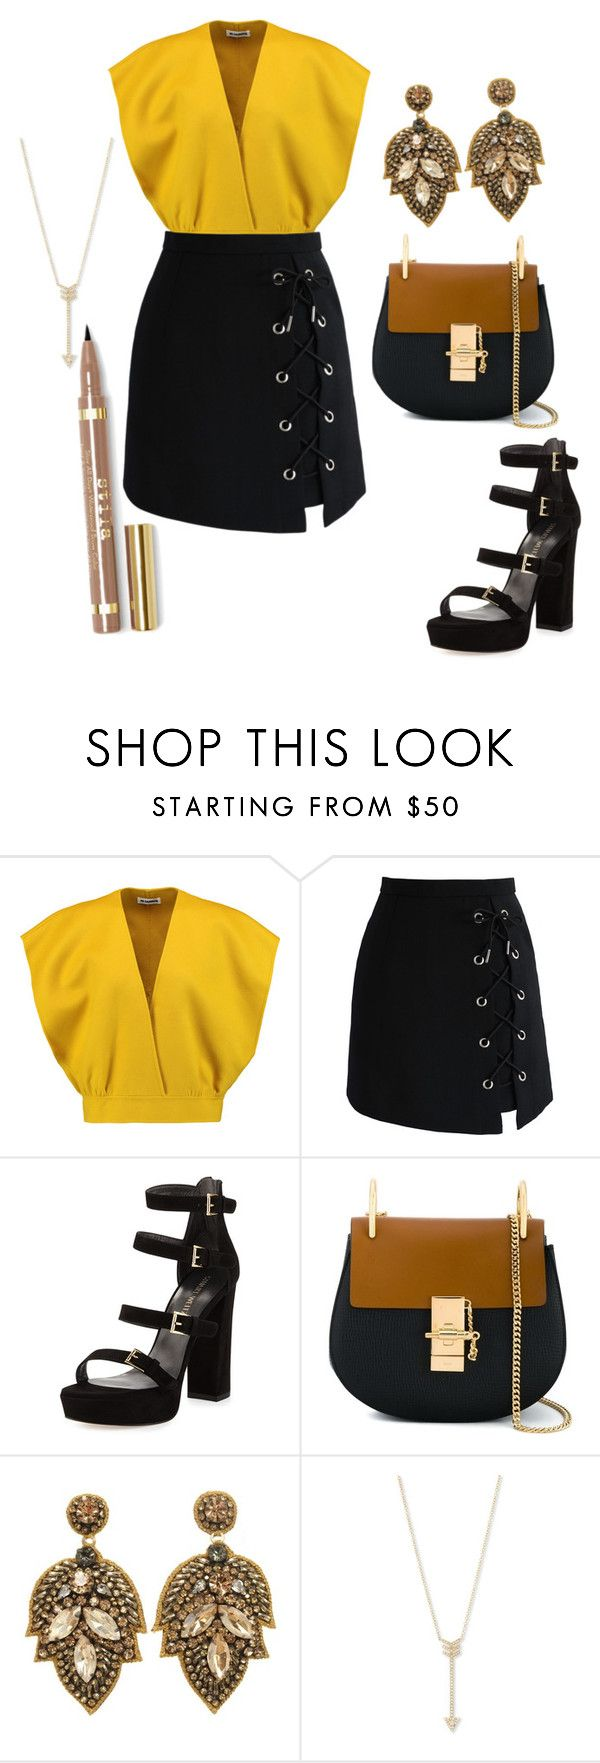 """Untitled #199"" by anjola112 on Polyvore featuring Jil Sander, Chicwish, Stuart Weitzman, Chloé and EF Collection"